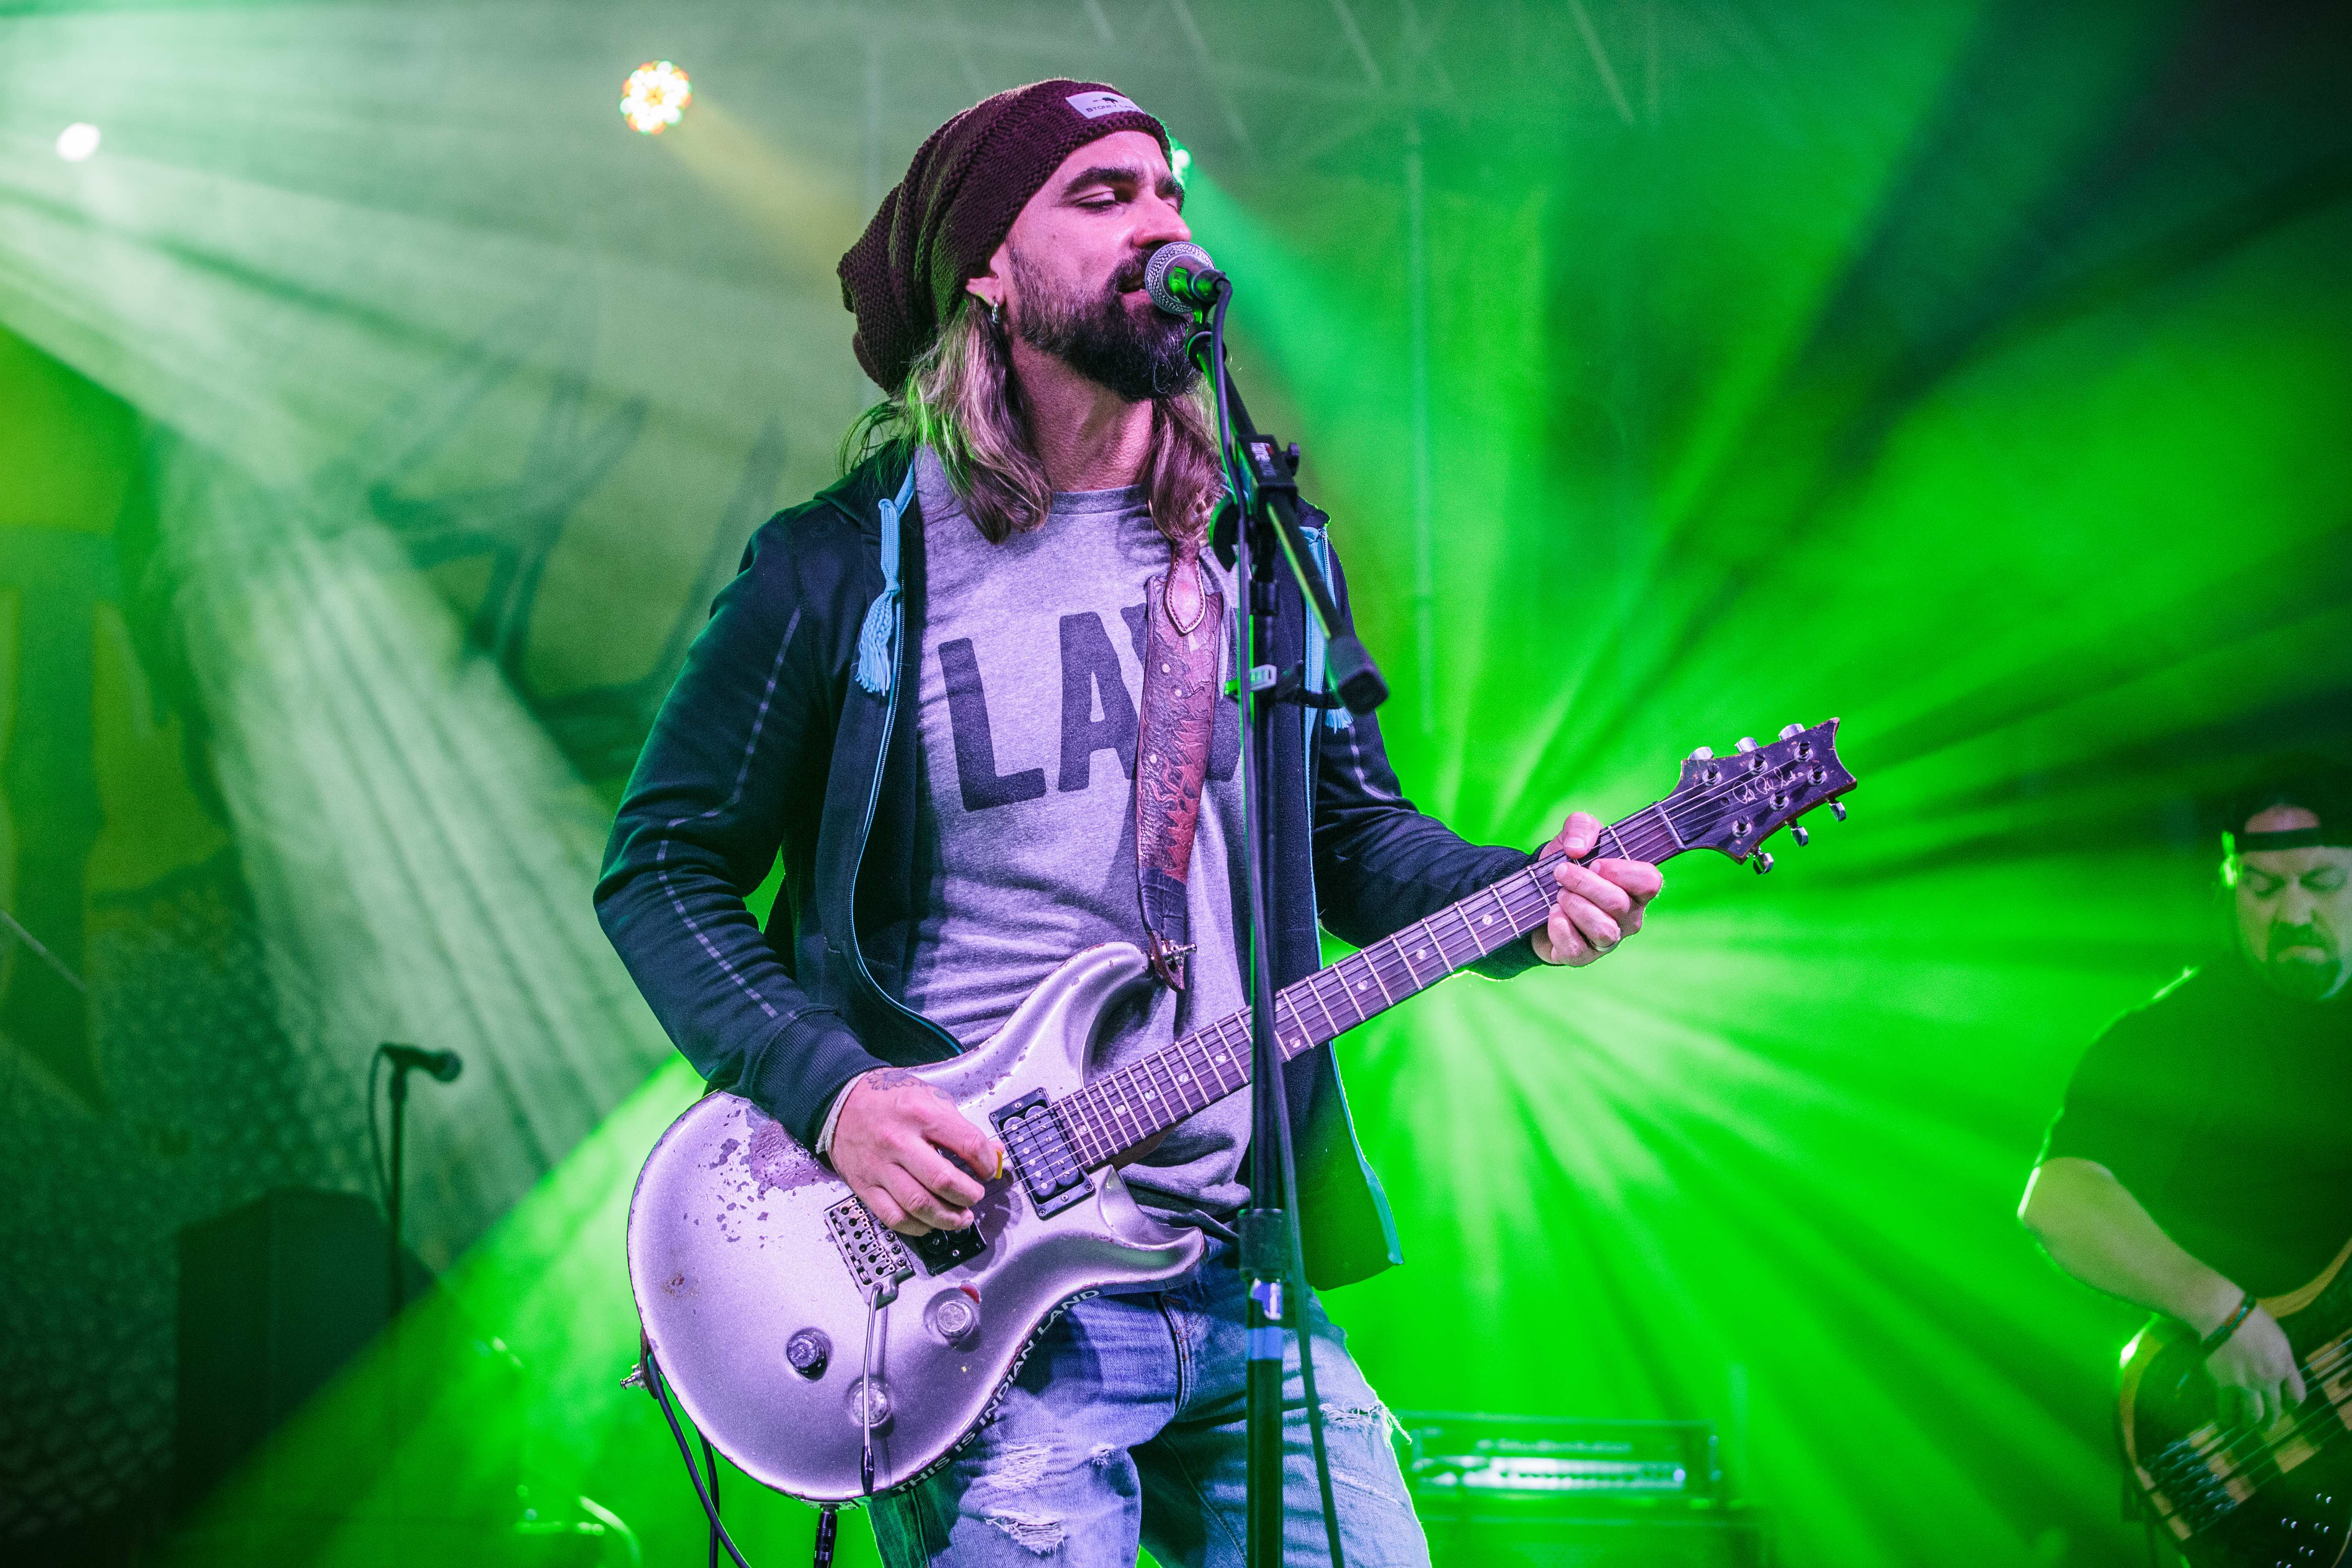 Austin360 On The Record: Tribute to Cody Canada & Cross Canadian Ragweed, more